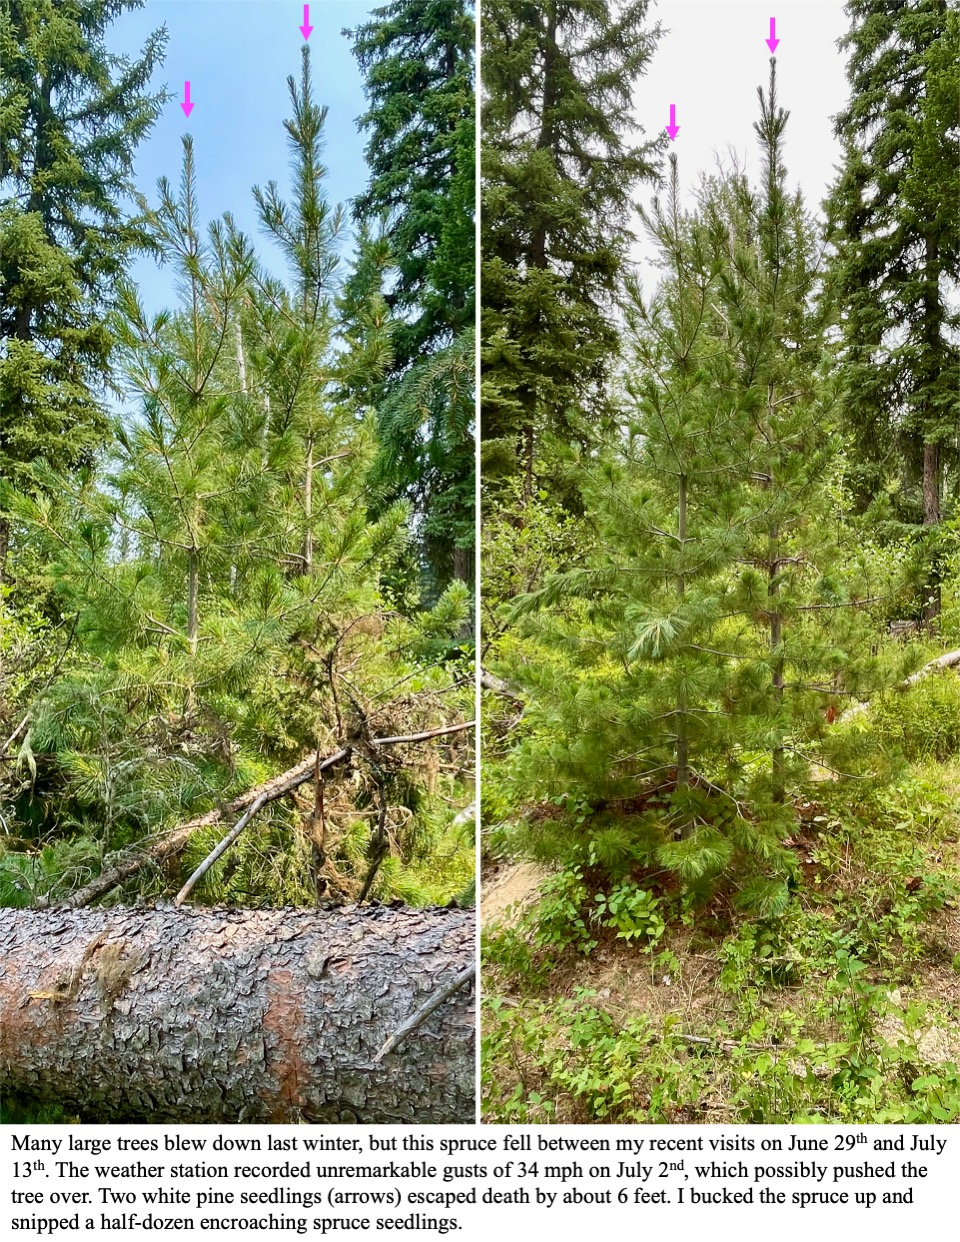 Many large trees blew down last winter, but this spruce fell between my recent visits on June 29th and July 13th